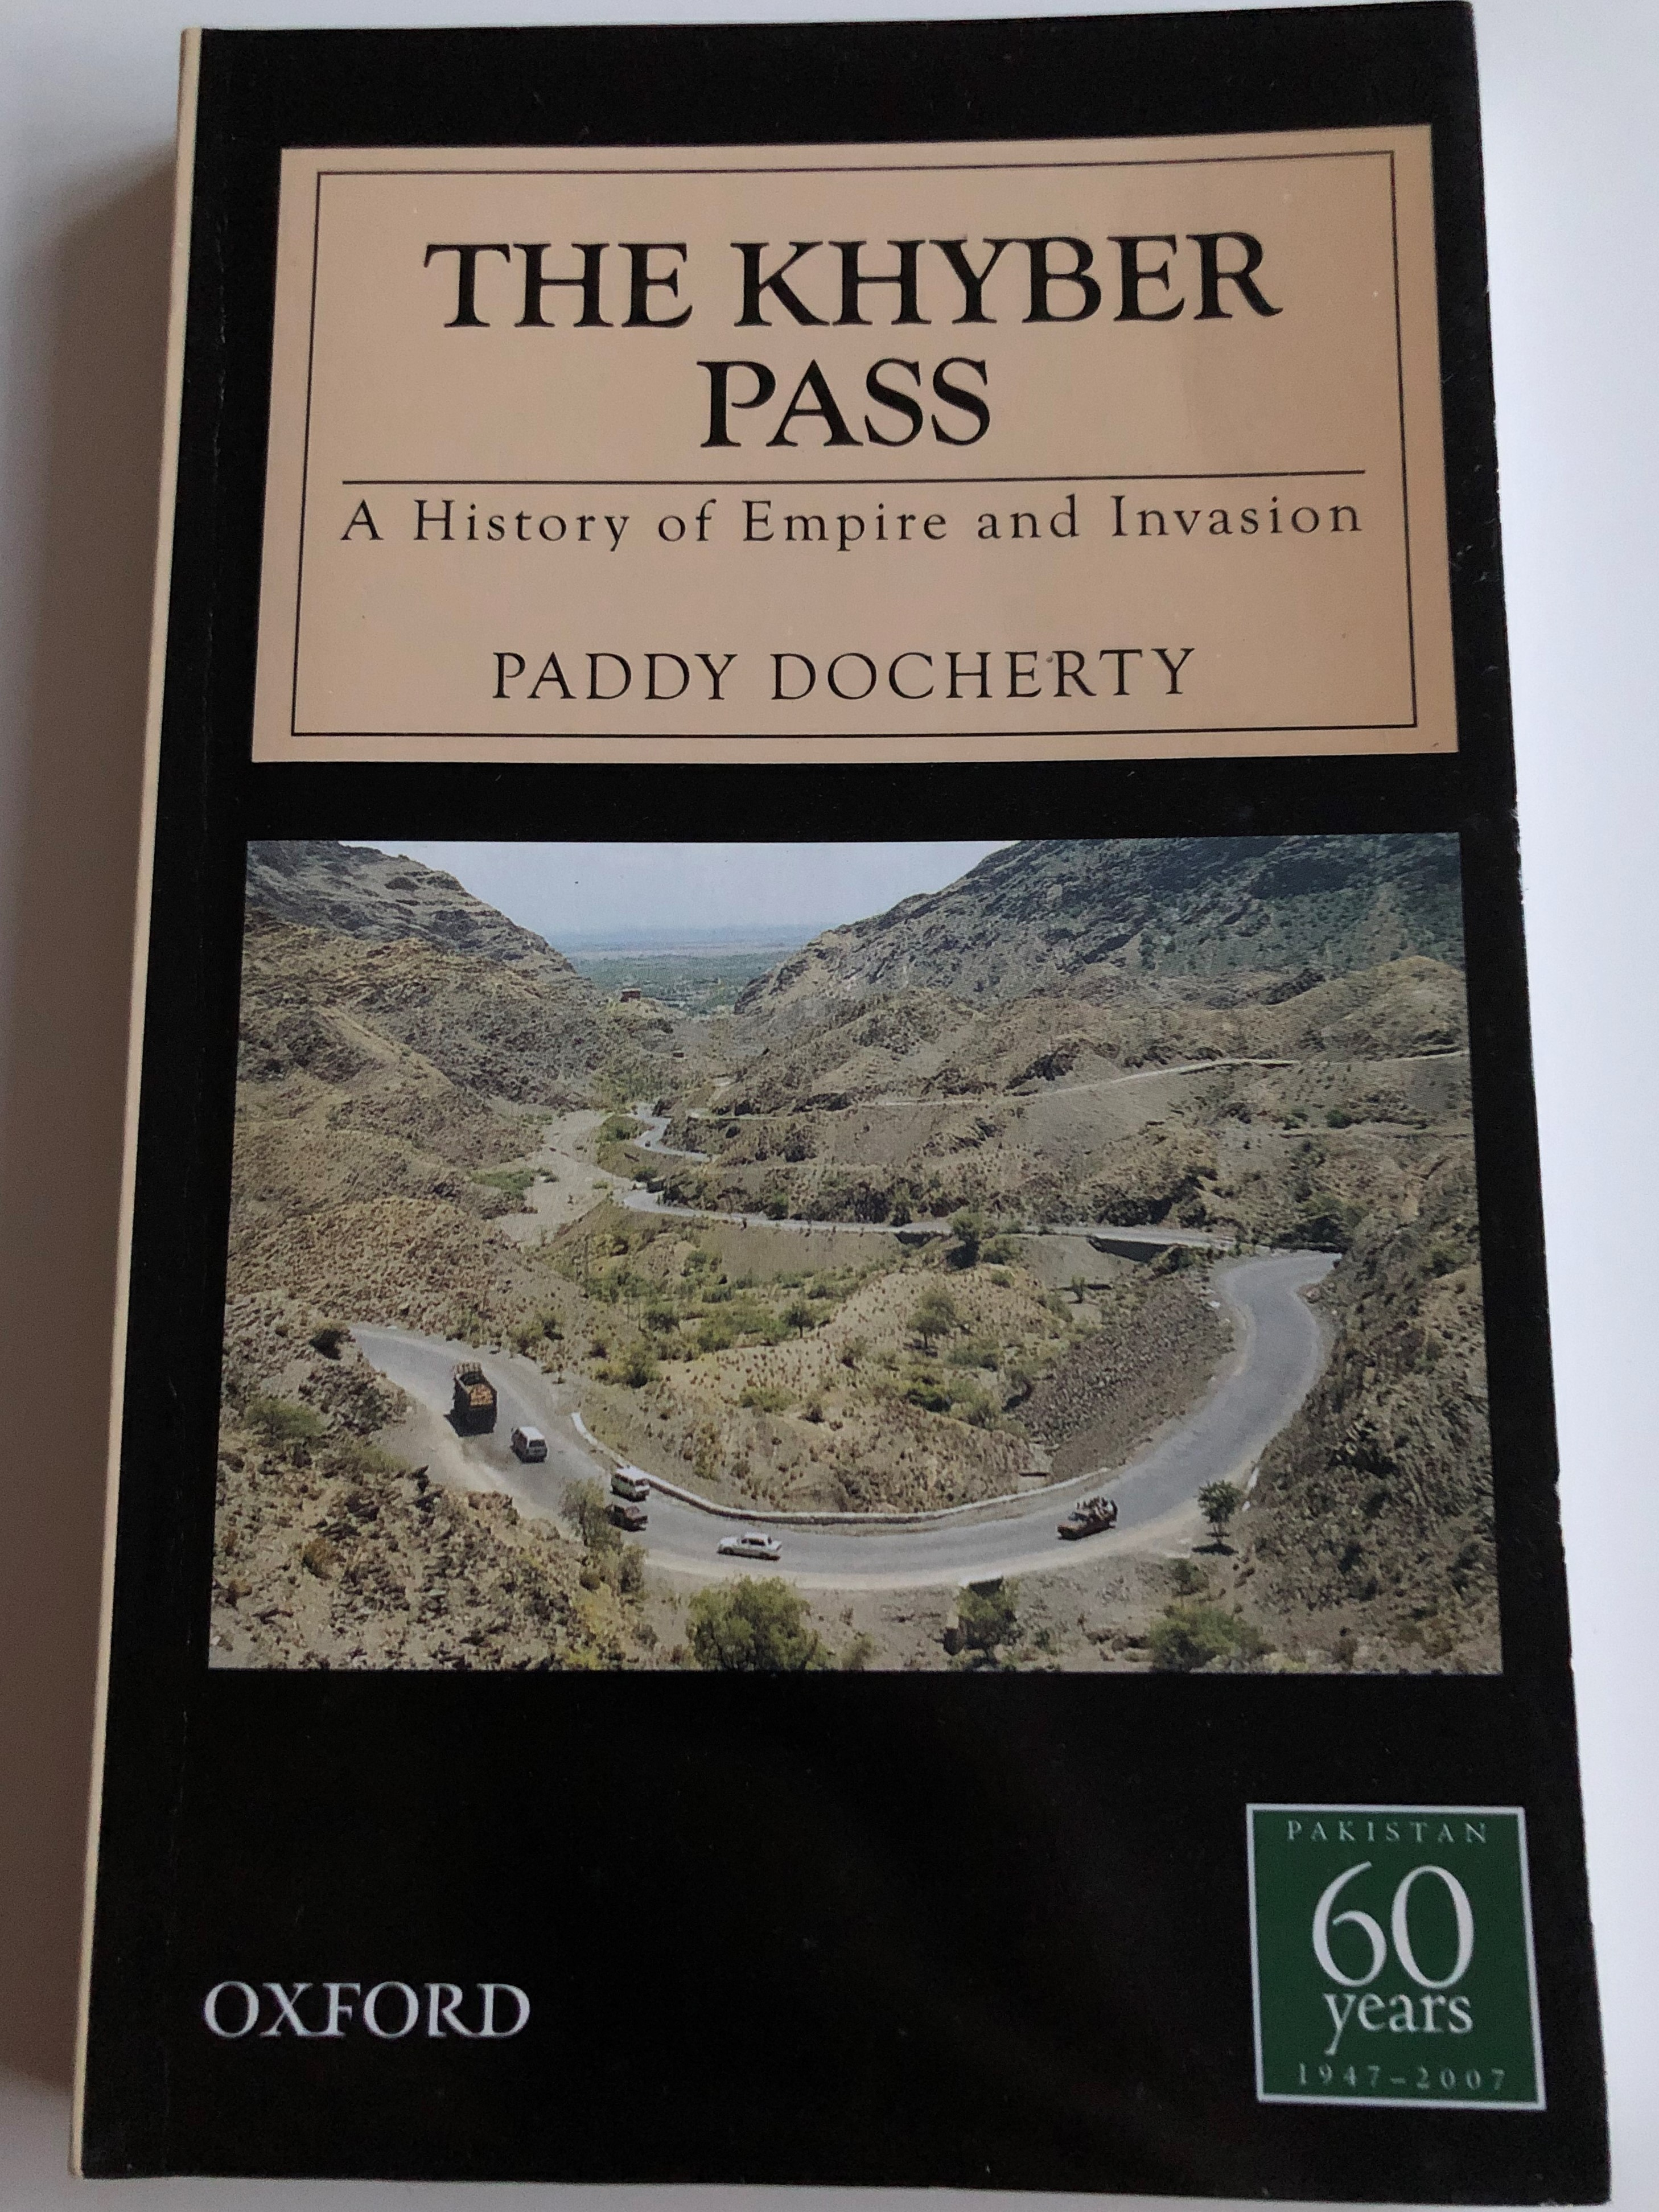 the-khyber-pass-a-history-of-empire-and-invasion-by-paddy-docherty-1-.jpg